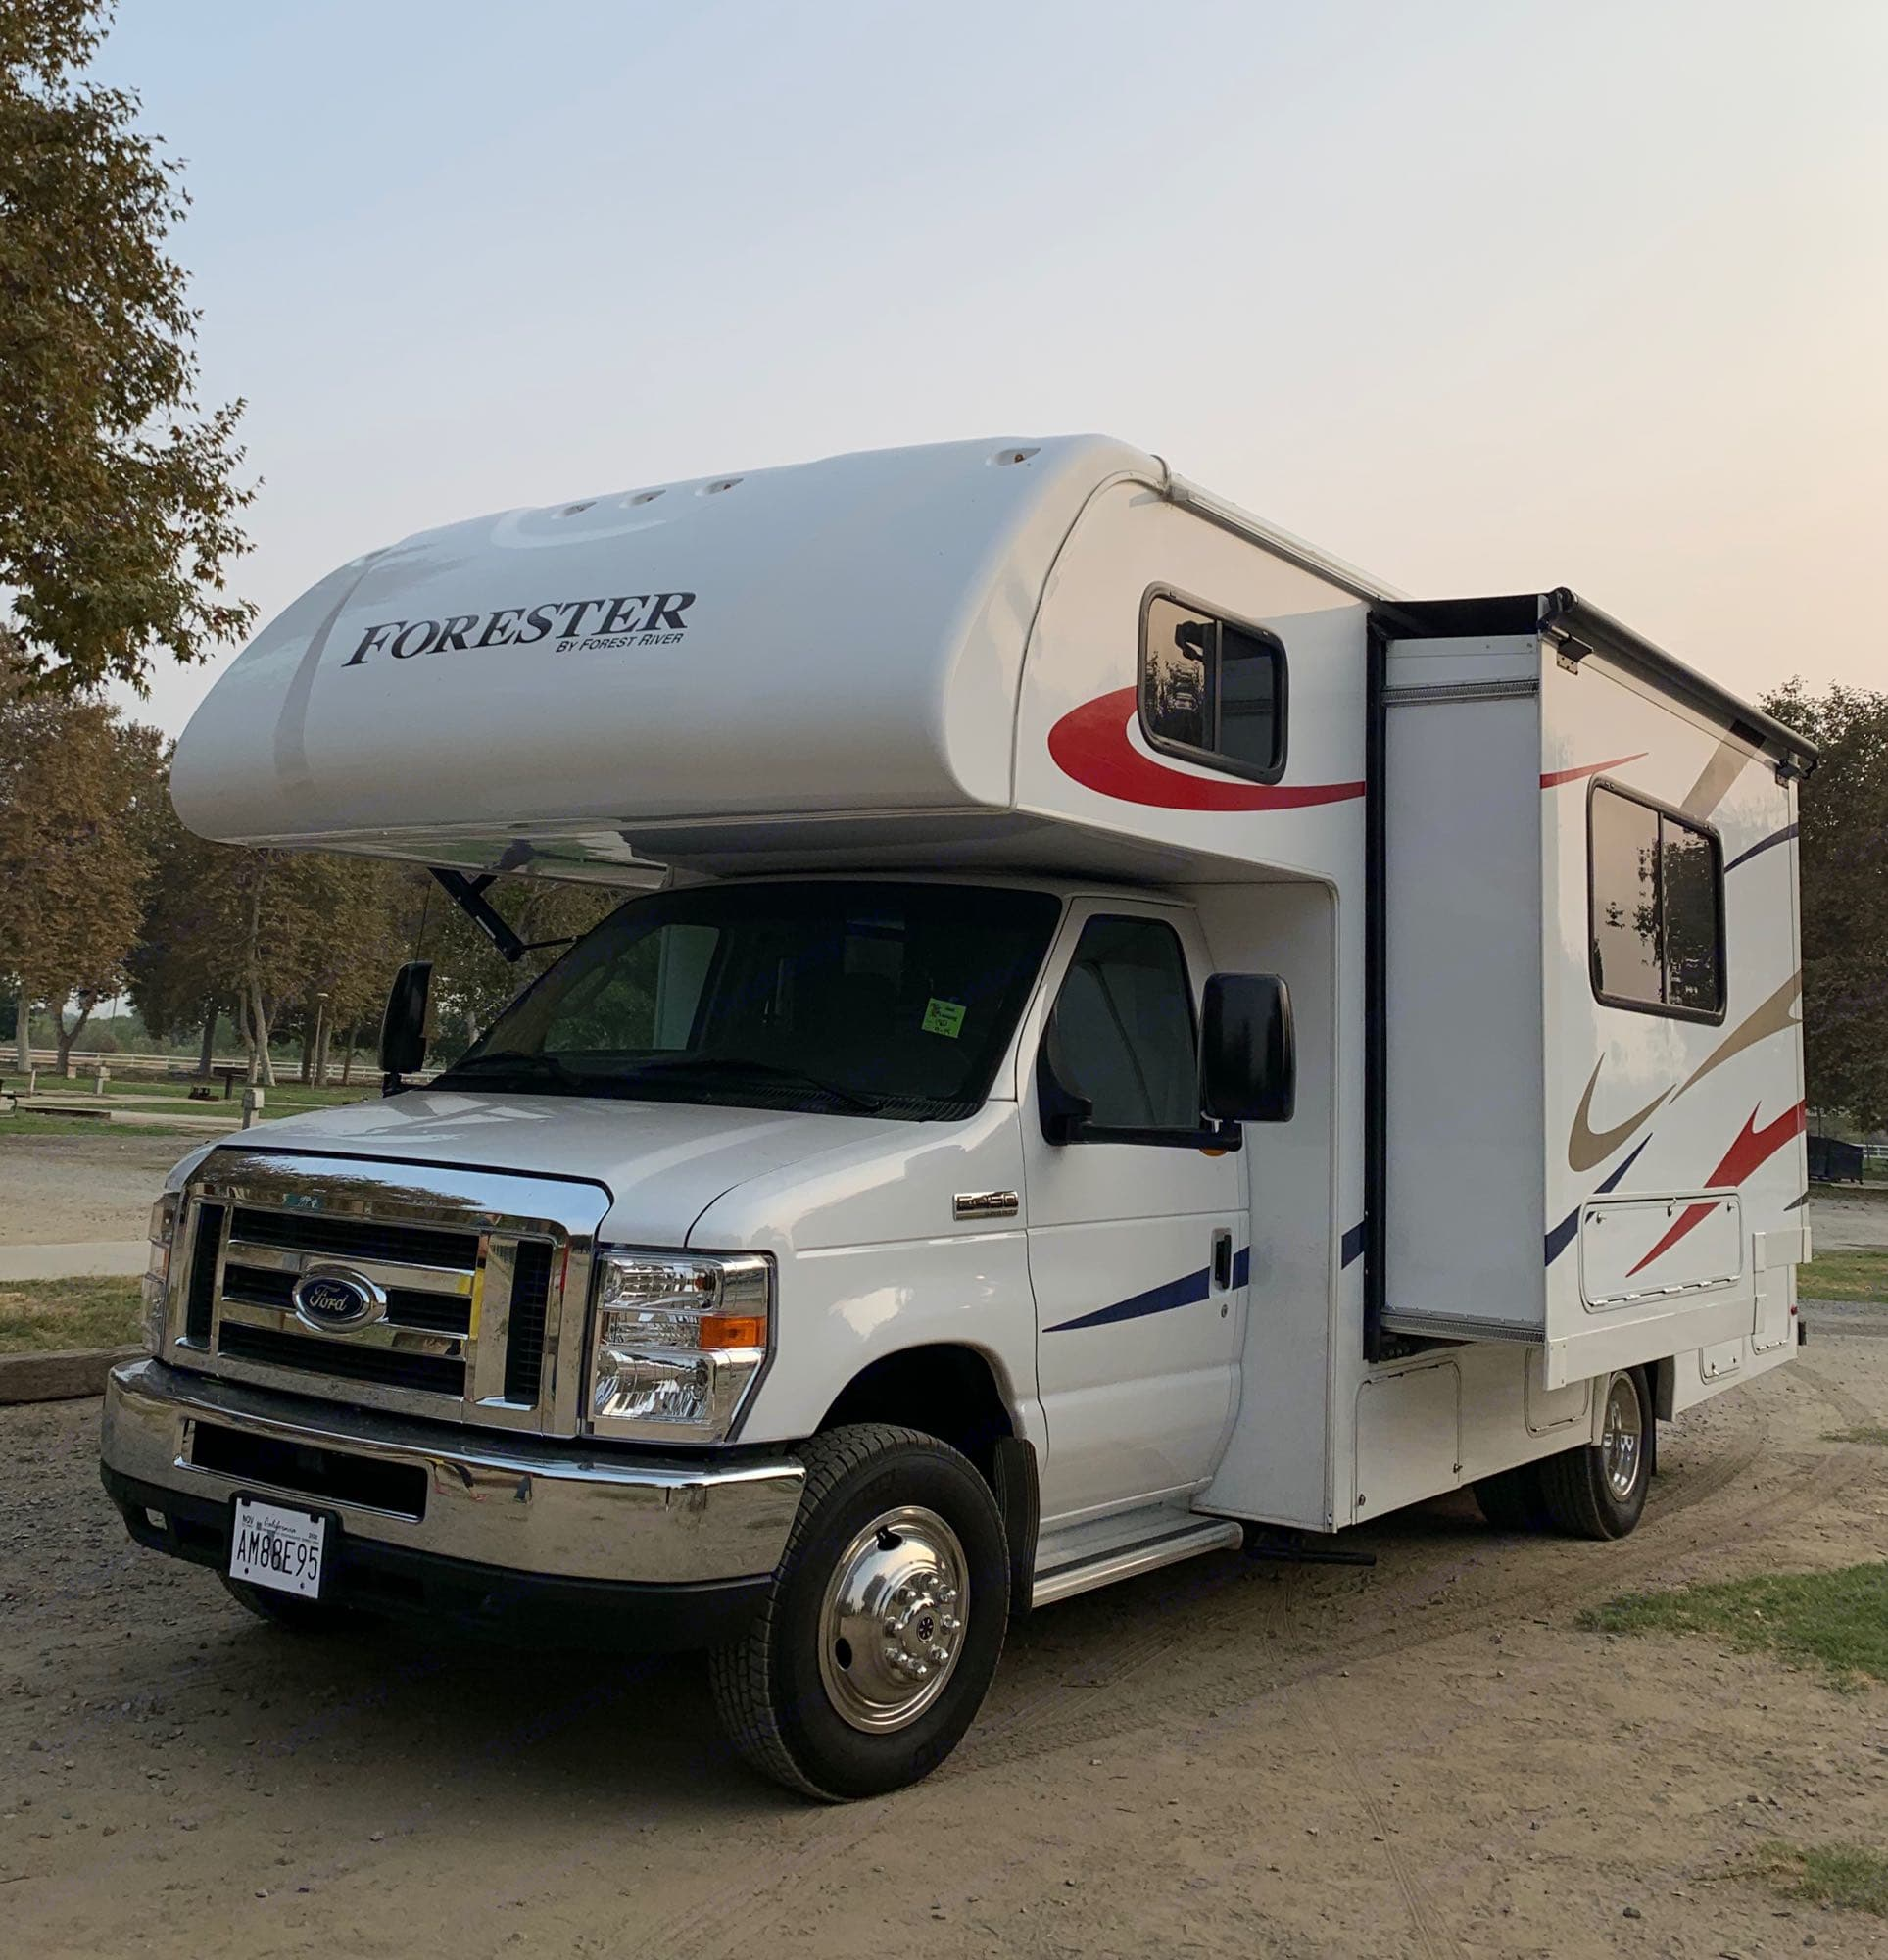 RV Slide out. Forest River Forester 2018